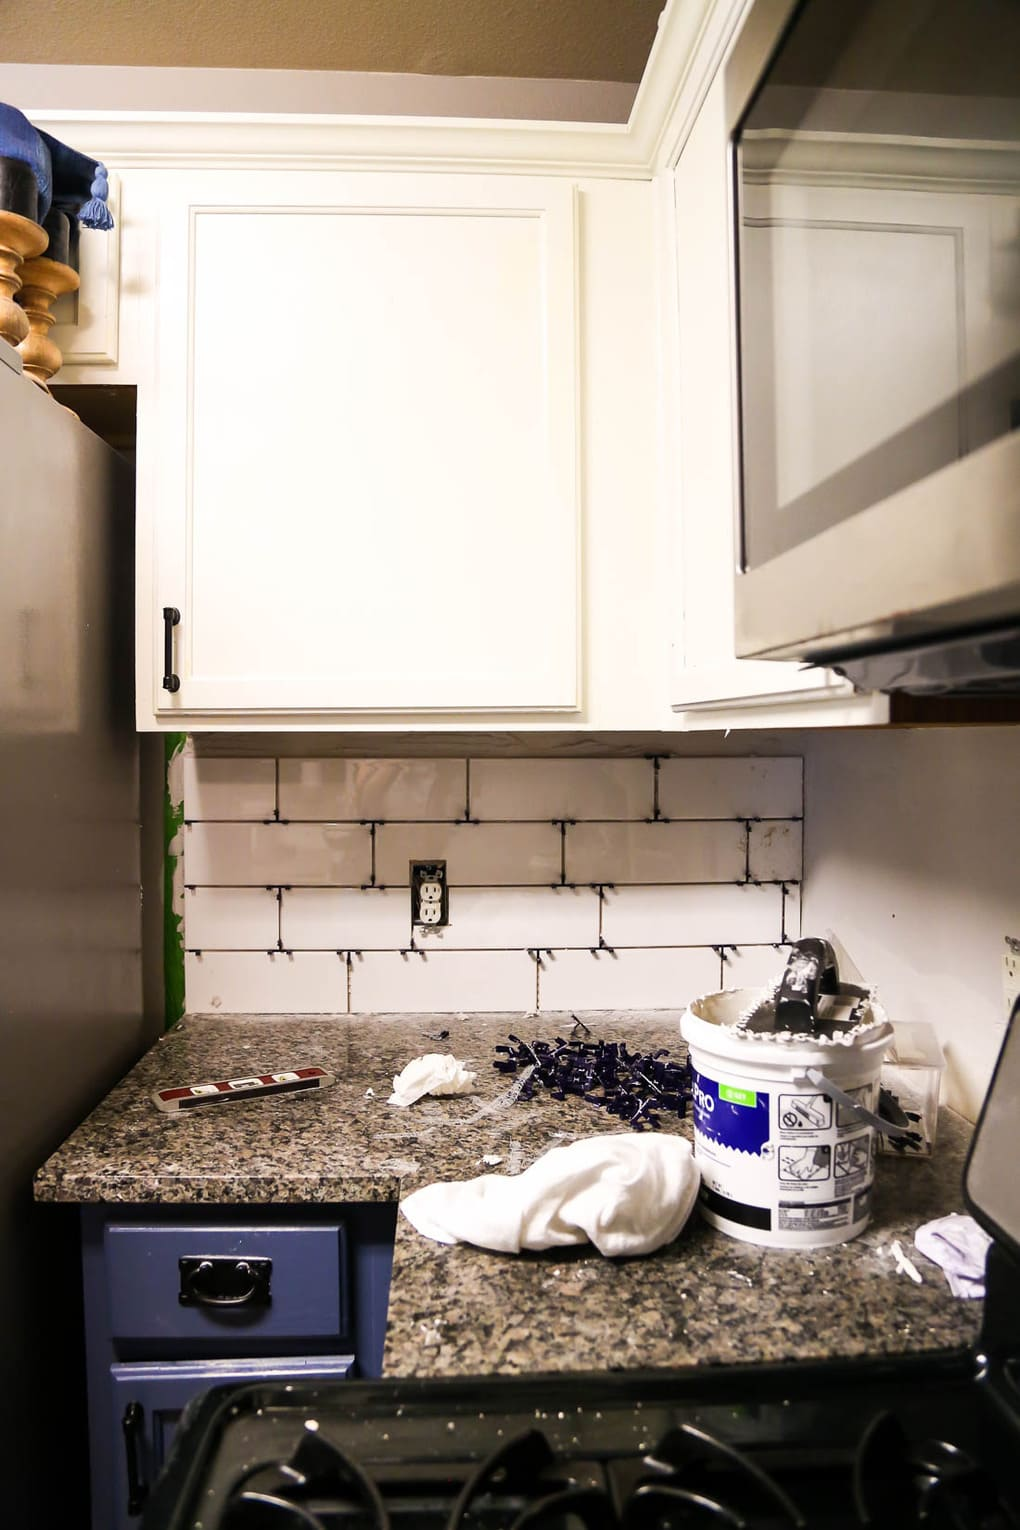 How to Install a Subway Tile Backsplash: Tips & Tricks